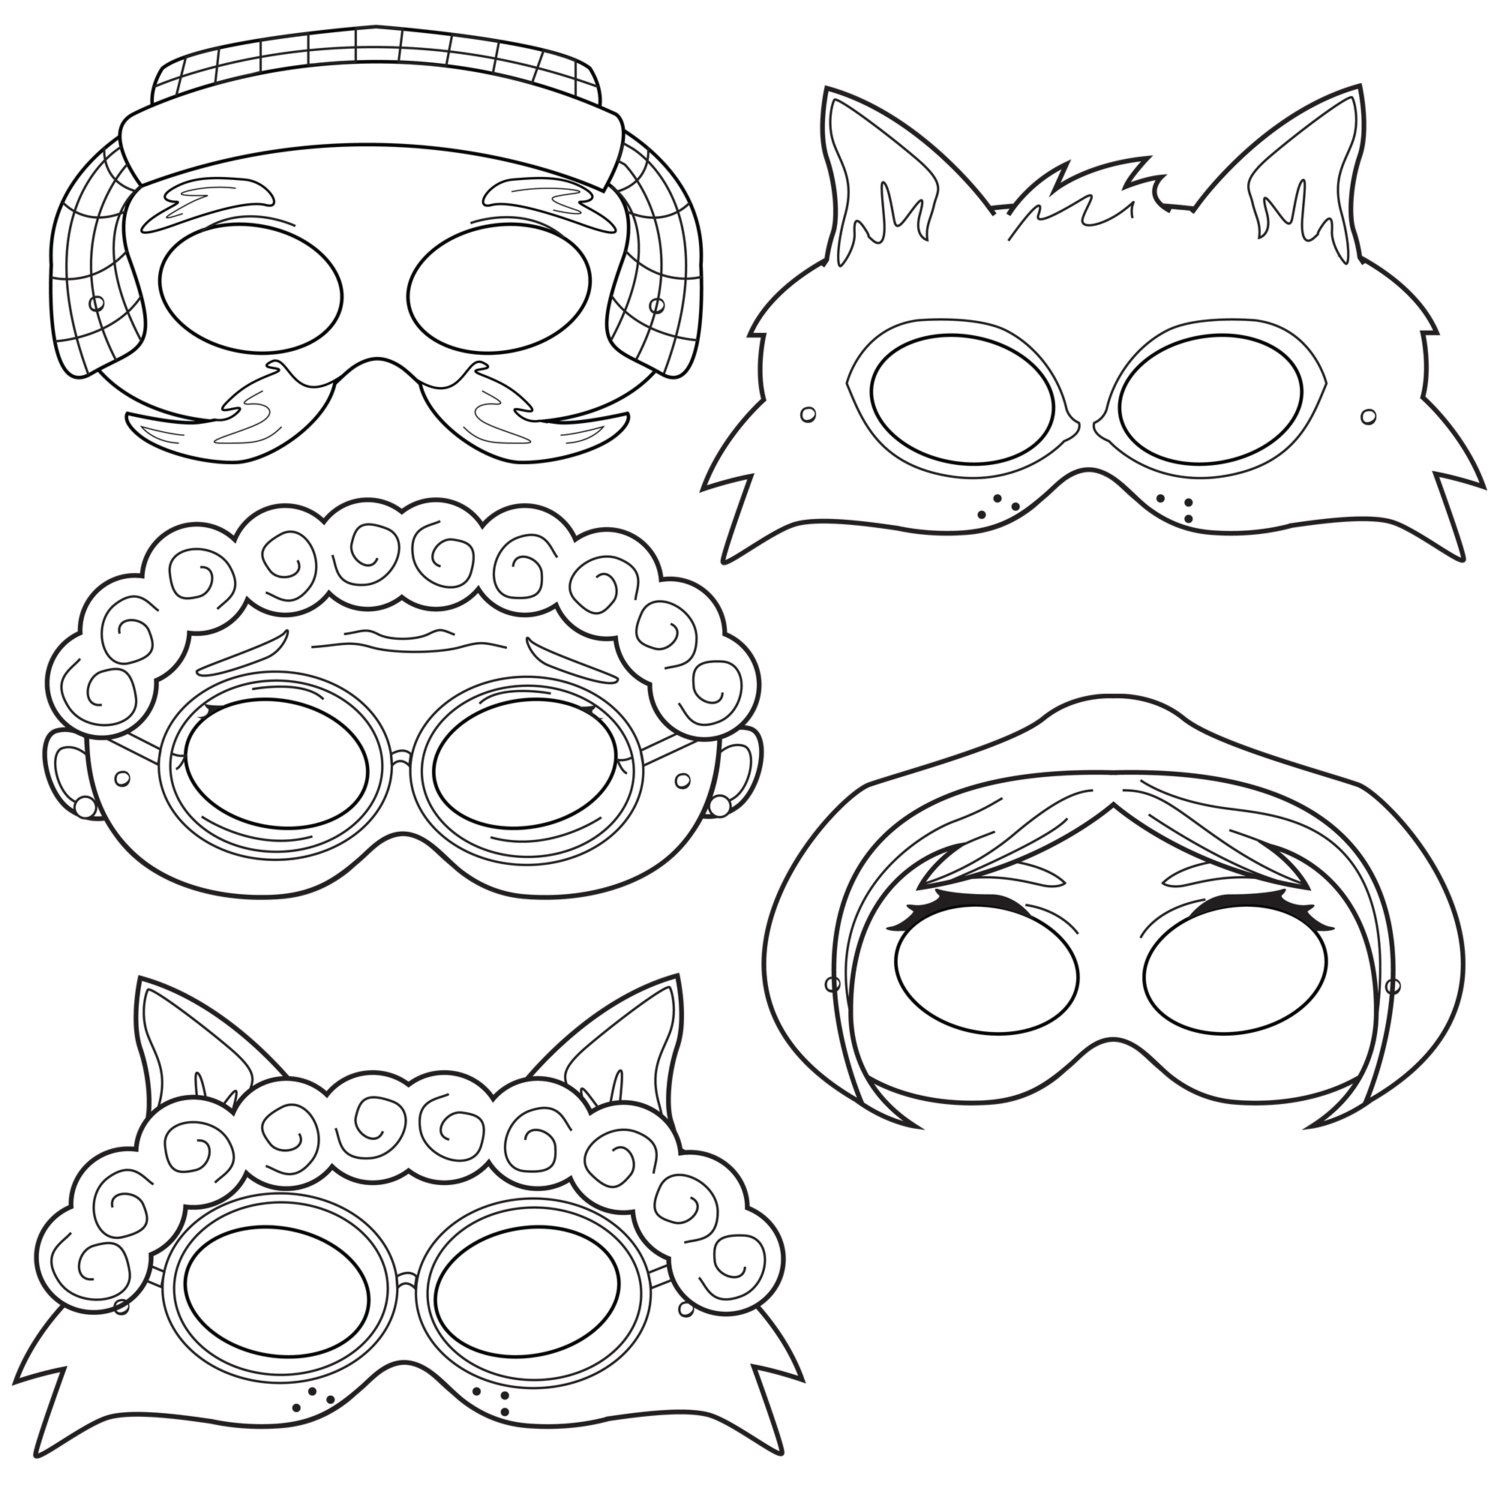 Little Red Riding Hood Printable Coloring Masks, Little Red, Wolf - Little Red Riding Hood Masks Printable Free